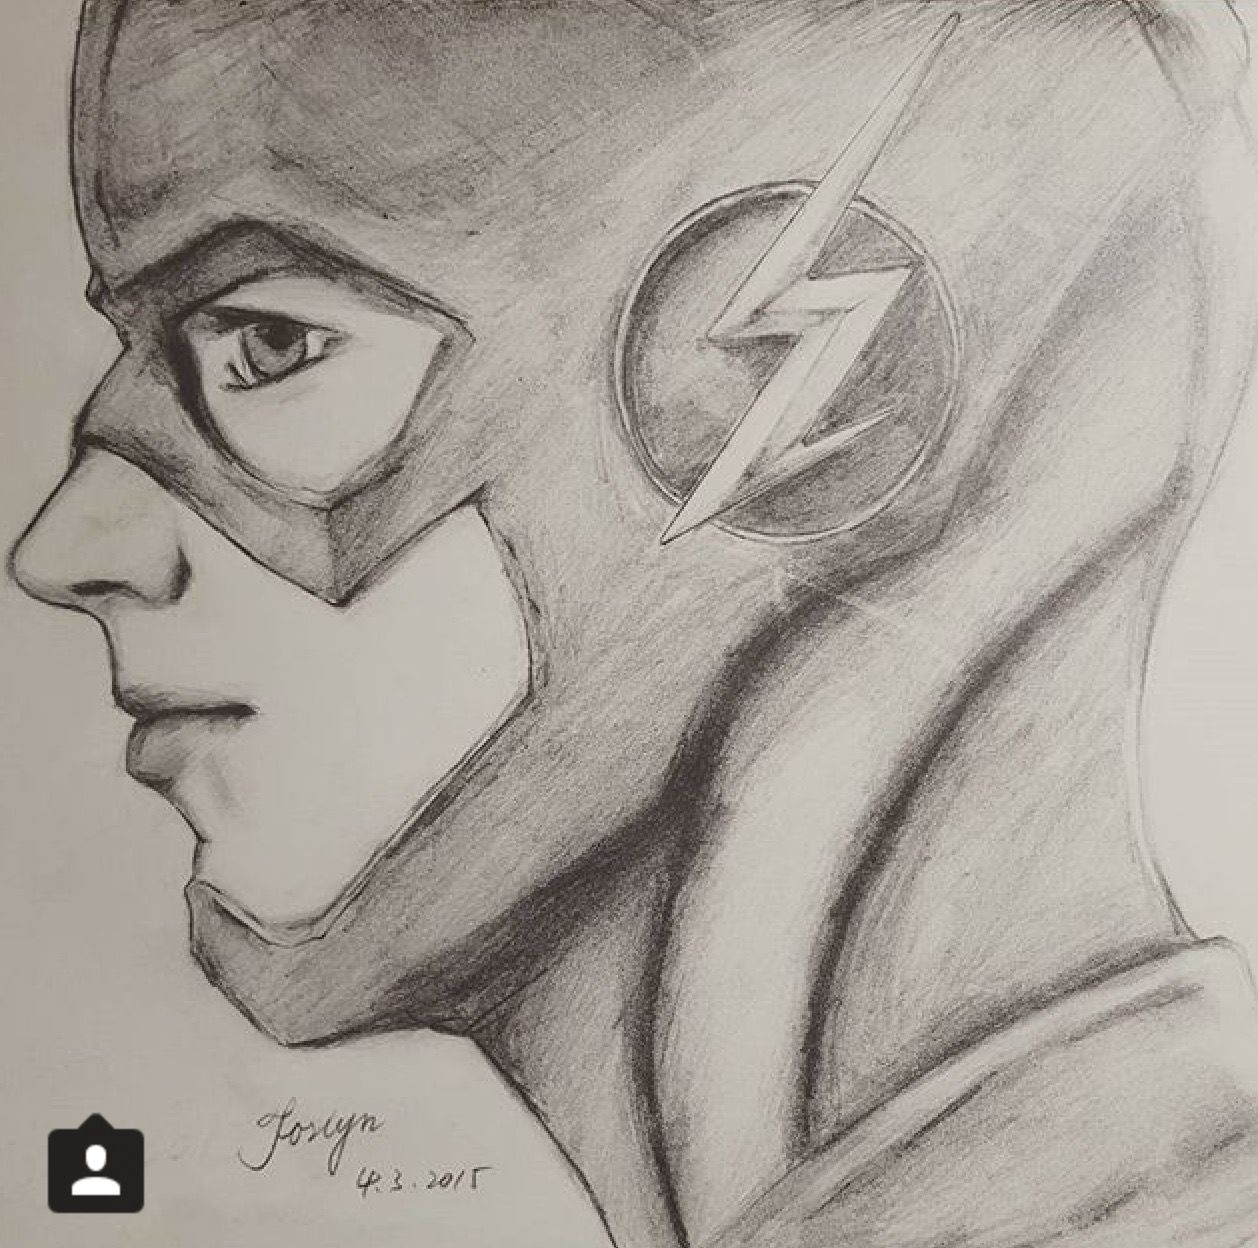 Amazing Drawings: Drawing Of A Really Cool Flash